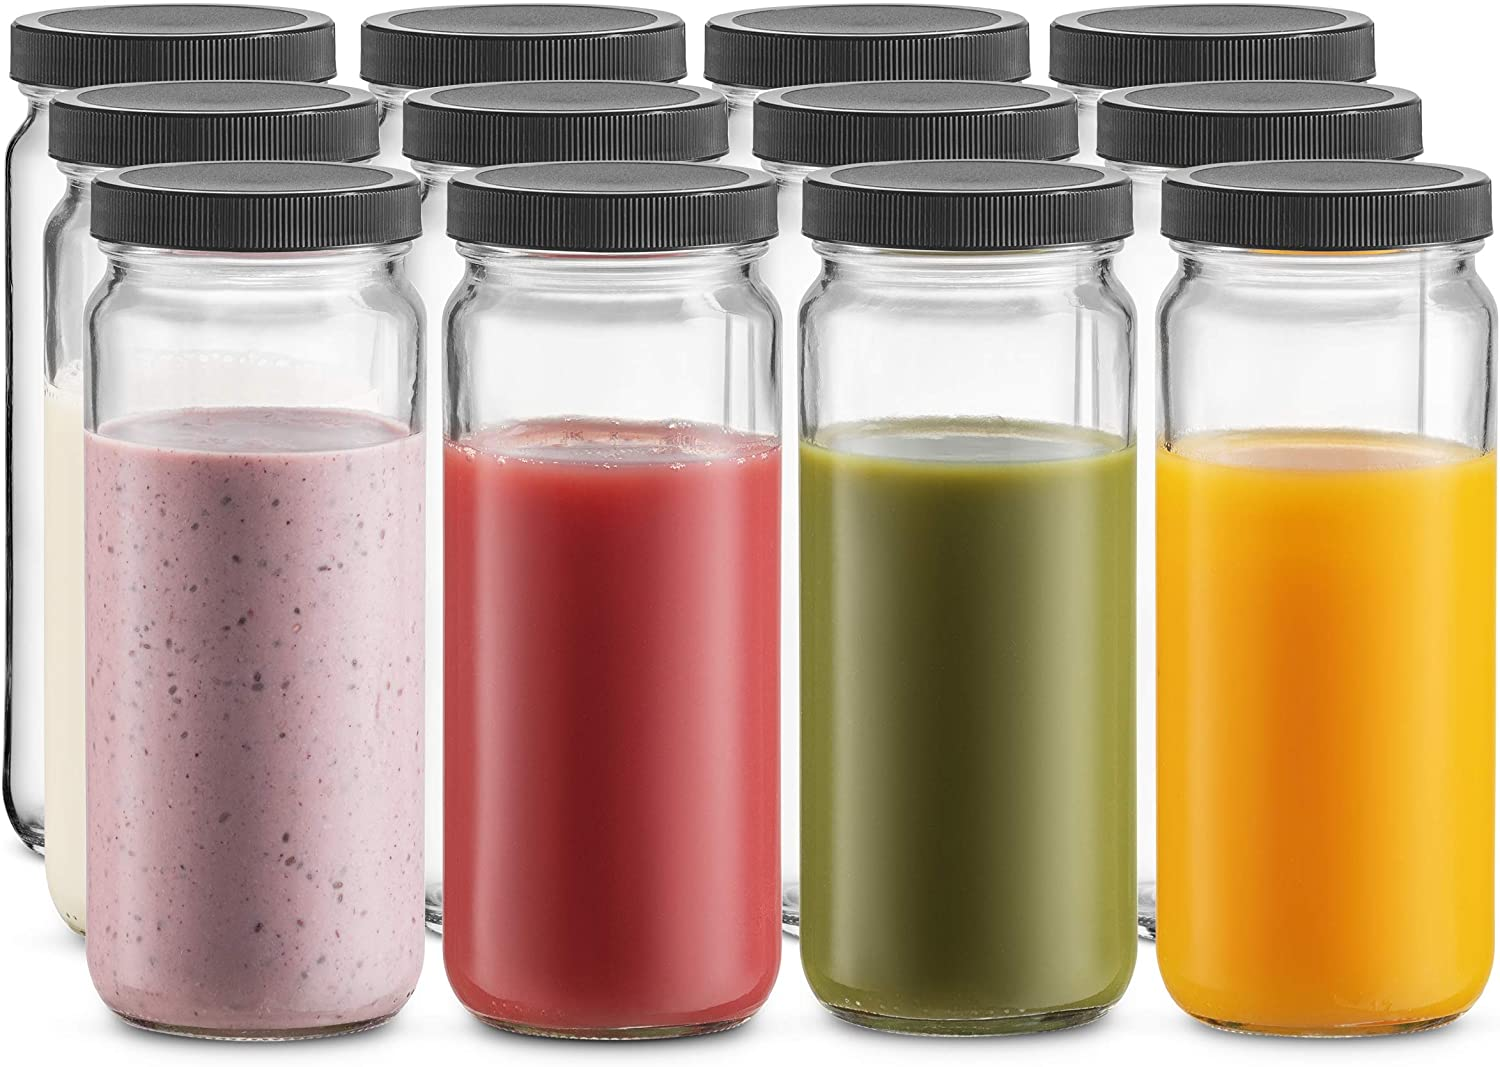 Travel Glass Drinking Bottle Mason Jar 16 Ounce [12-Pack] Plastic Airtight Lids, Reusable Glass Water Bottle for Juicing, Smoothies, Kombucha, Tea, Milk Bottles, Homemade Beverages Bottle,